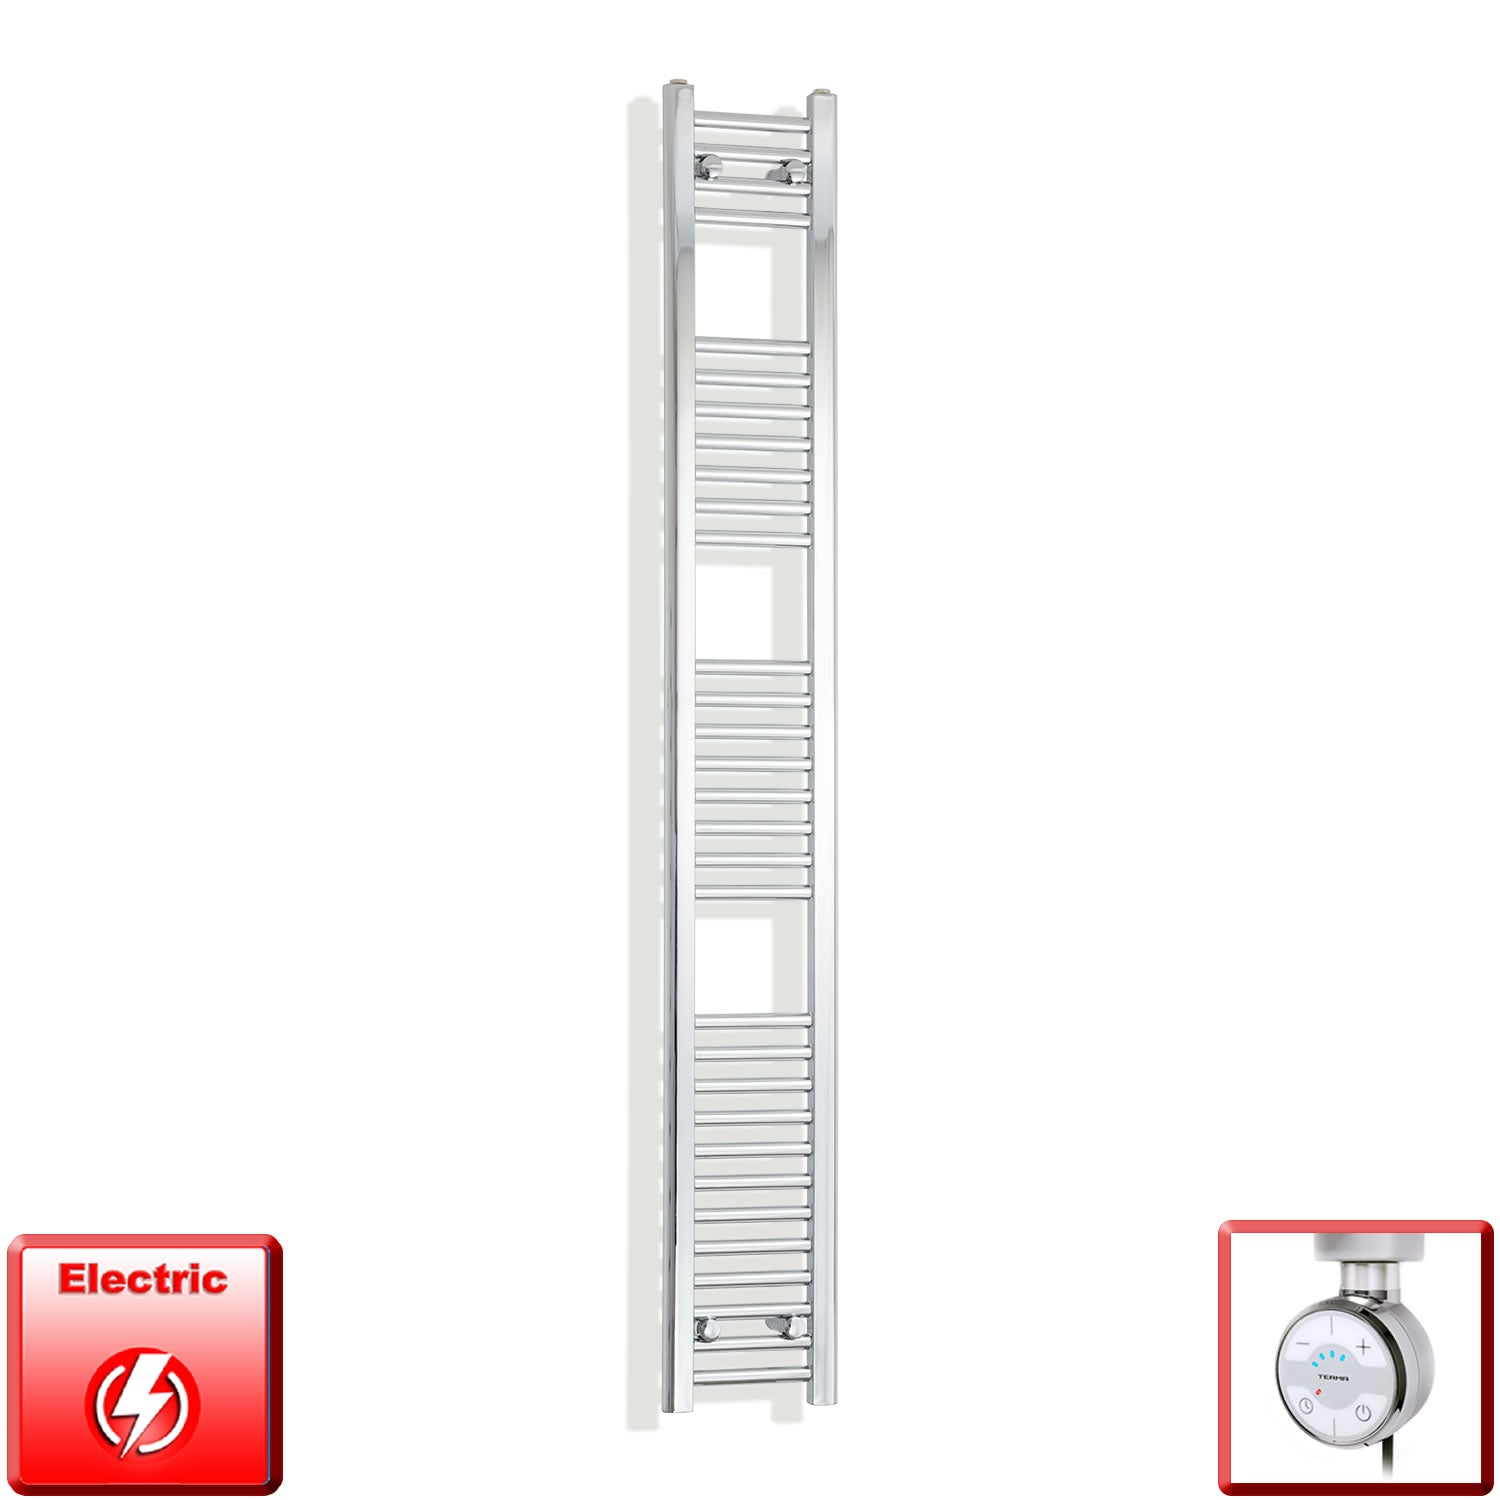 250mm Wide 1800mm High Pre-Filled Chrome Electric Towel Rail Radiator With Thermostatic MOA Element